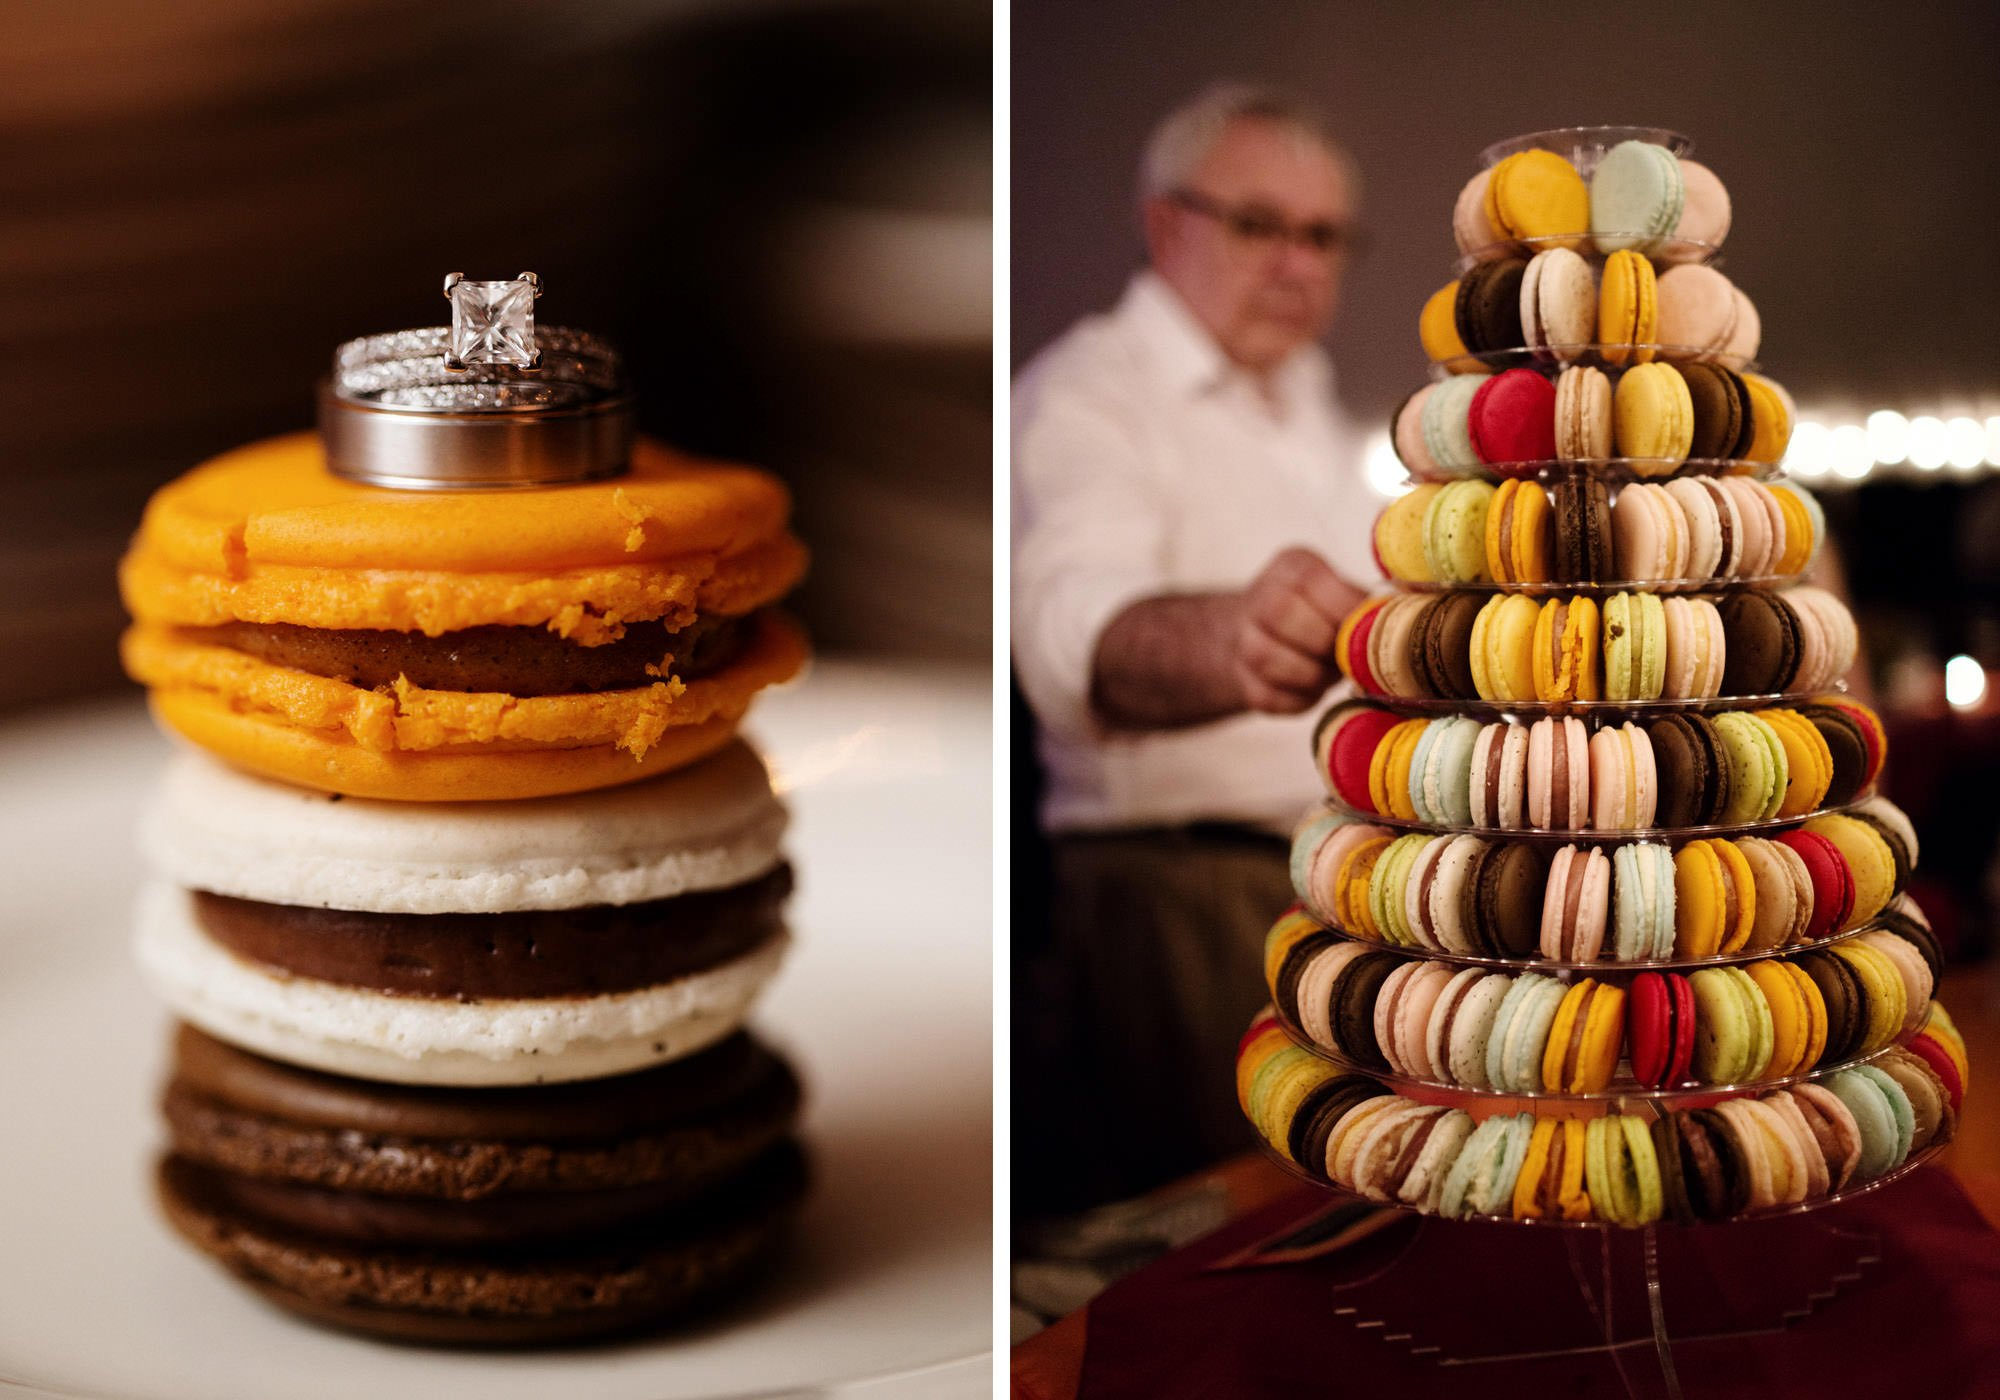 Details of the rings and macaroons during the wedding reception at Doukenie Winery.